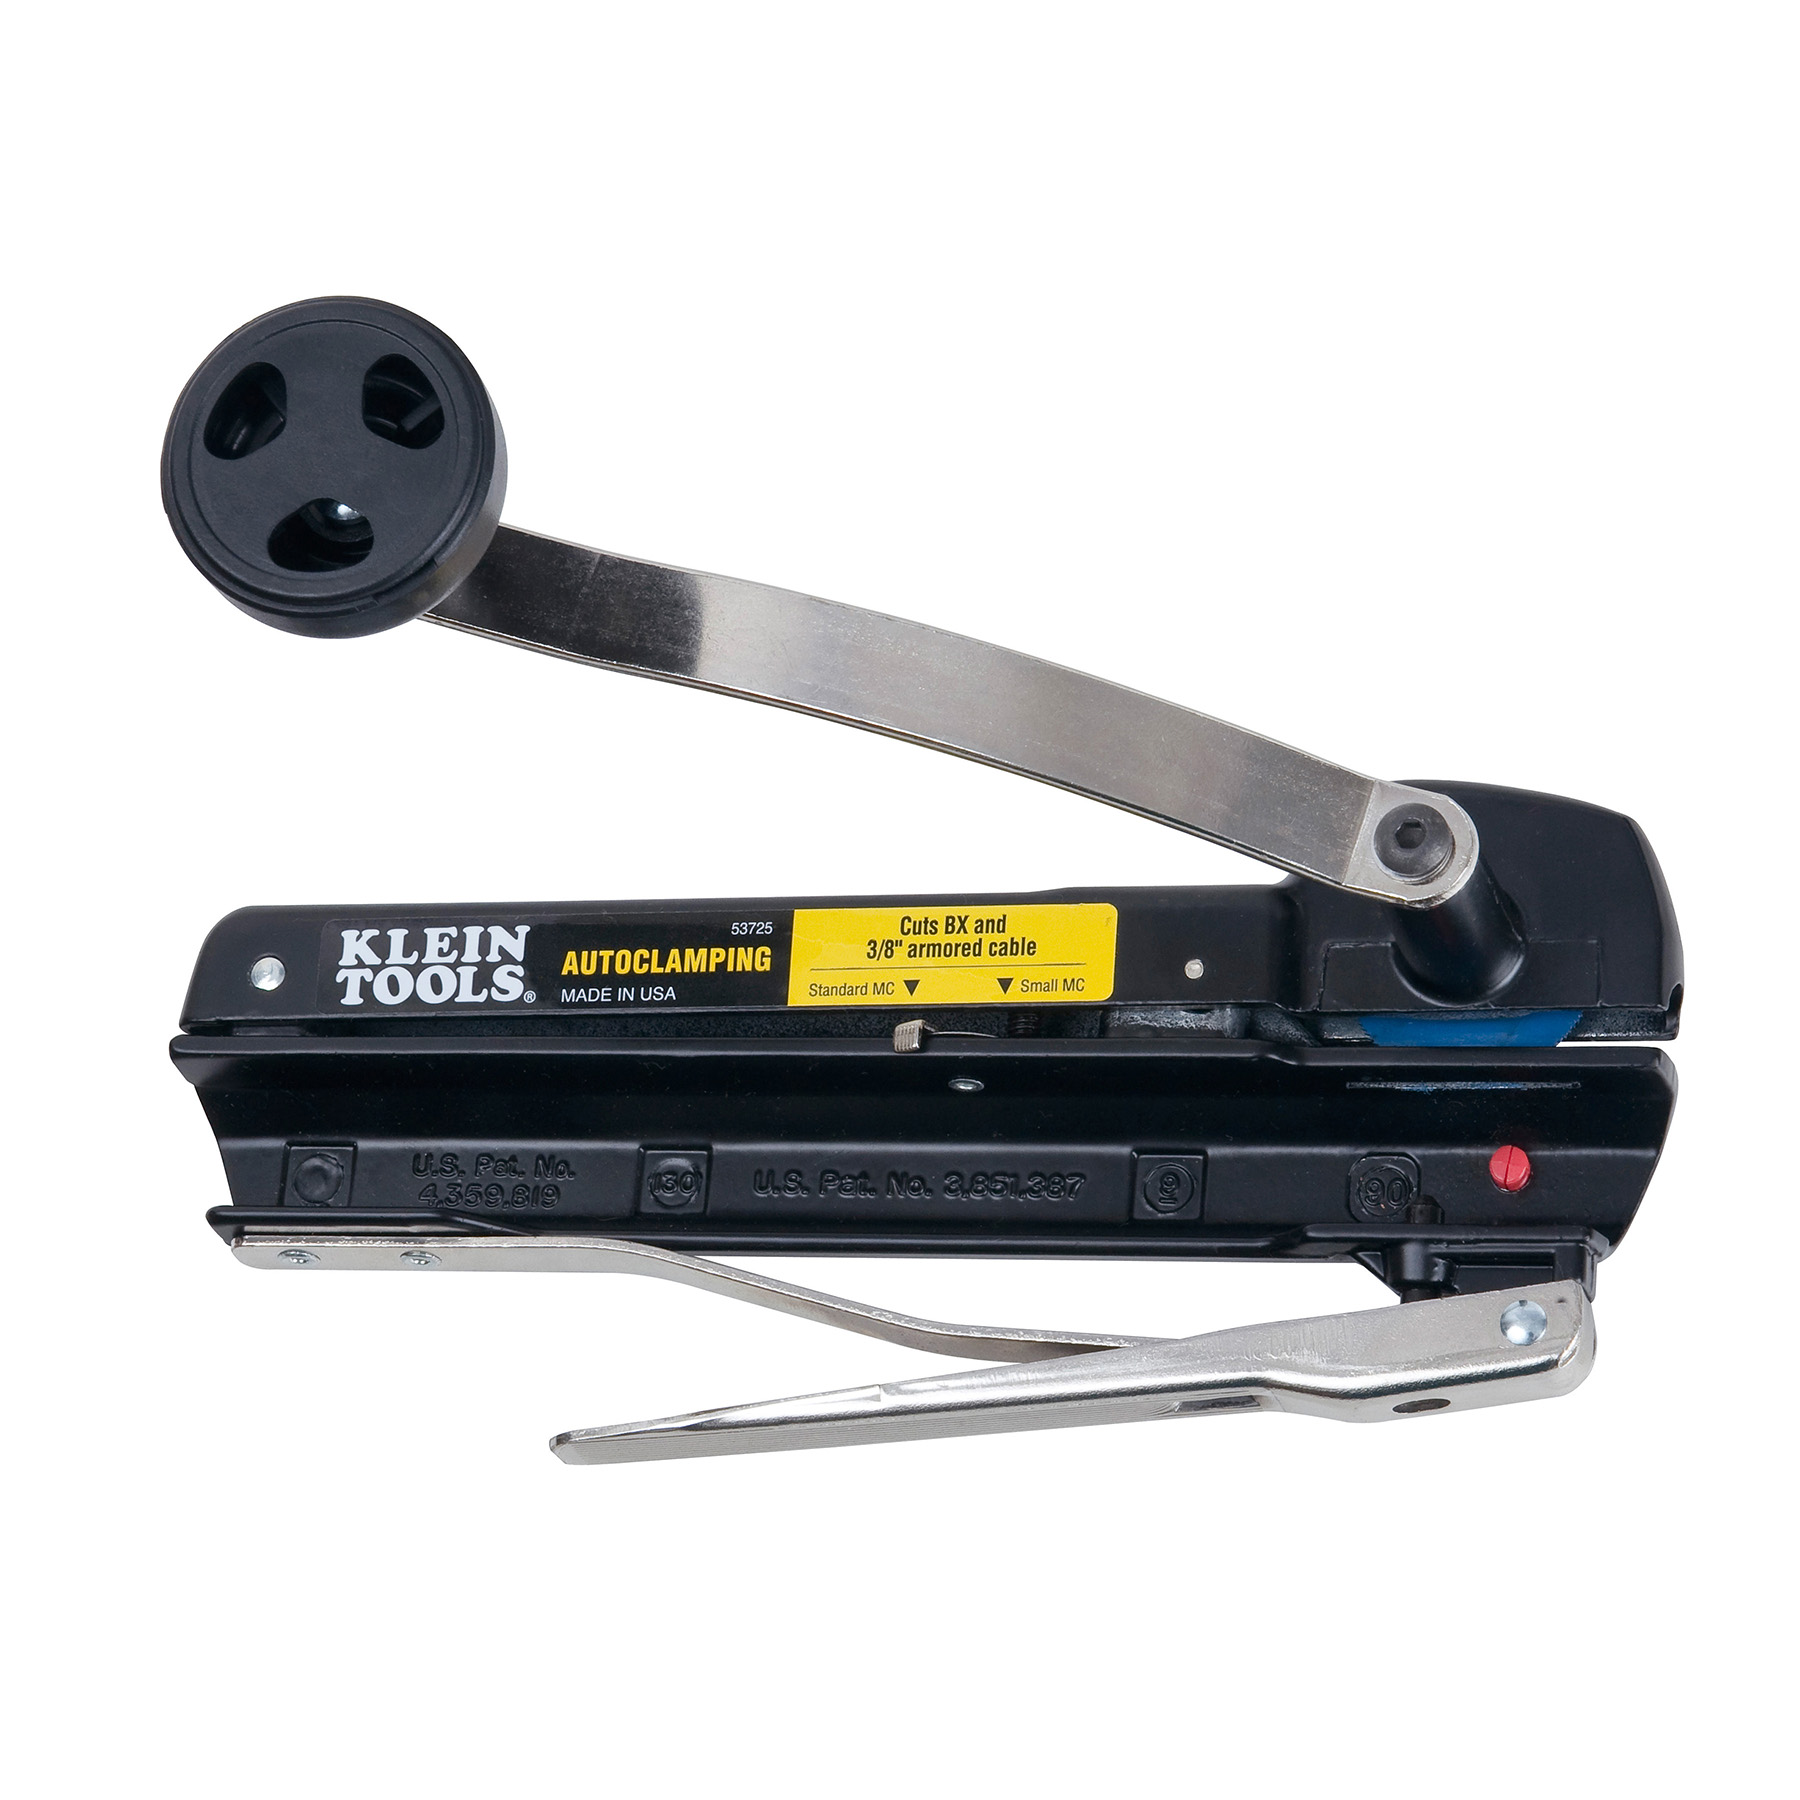 Bx And Armored Cable Cutter 53725 Klein Tools For